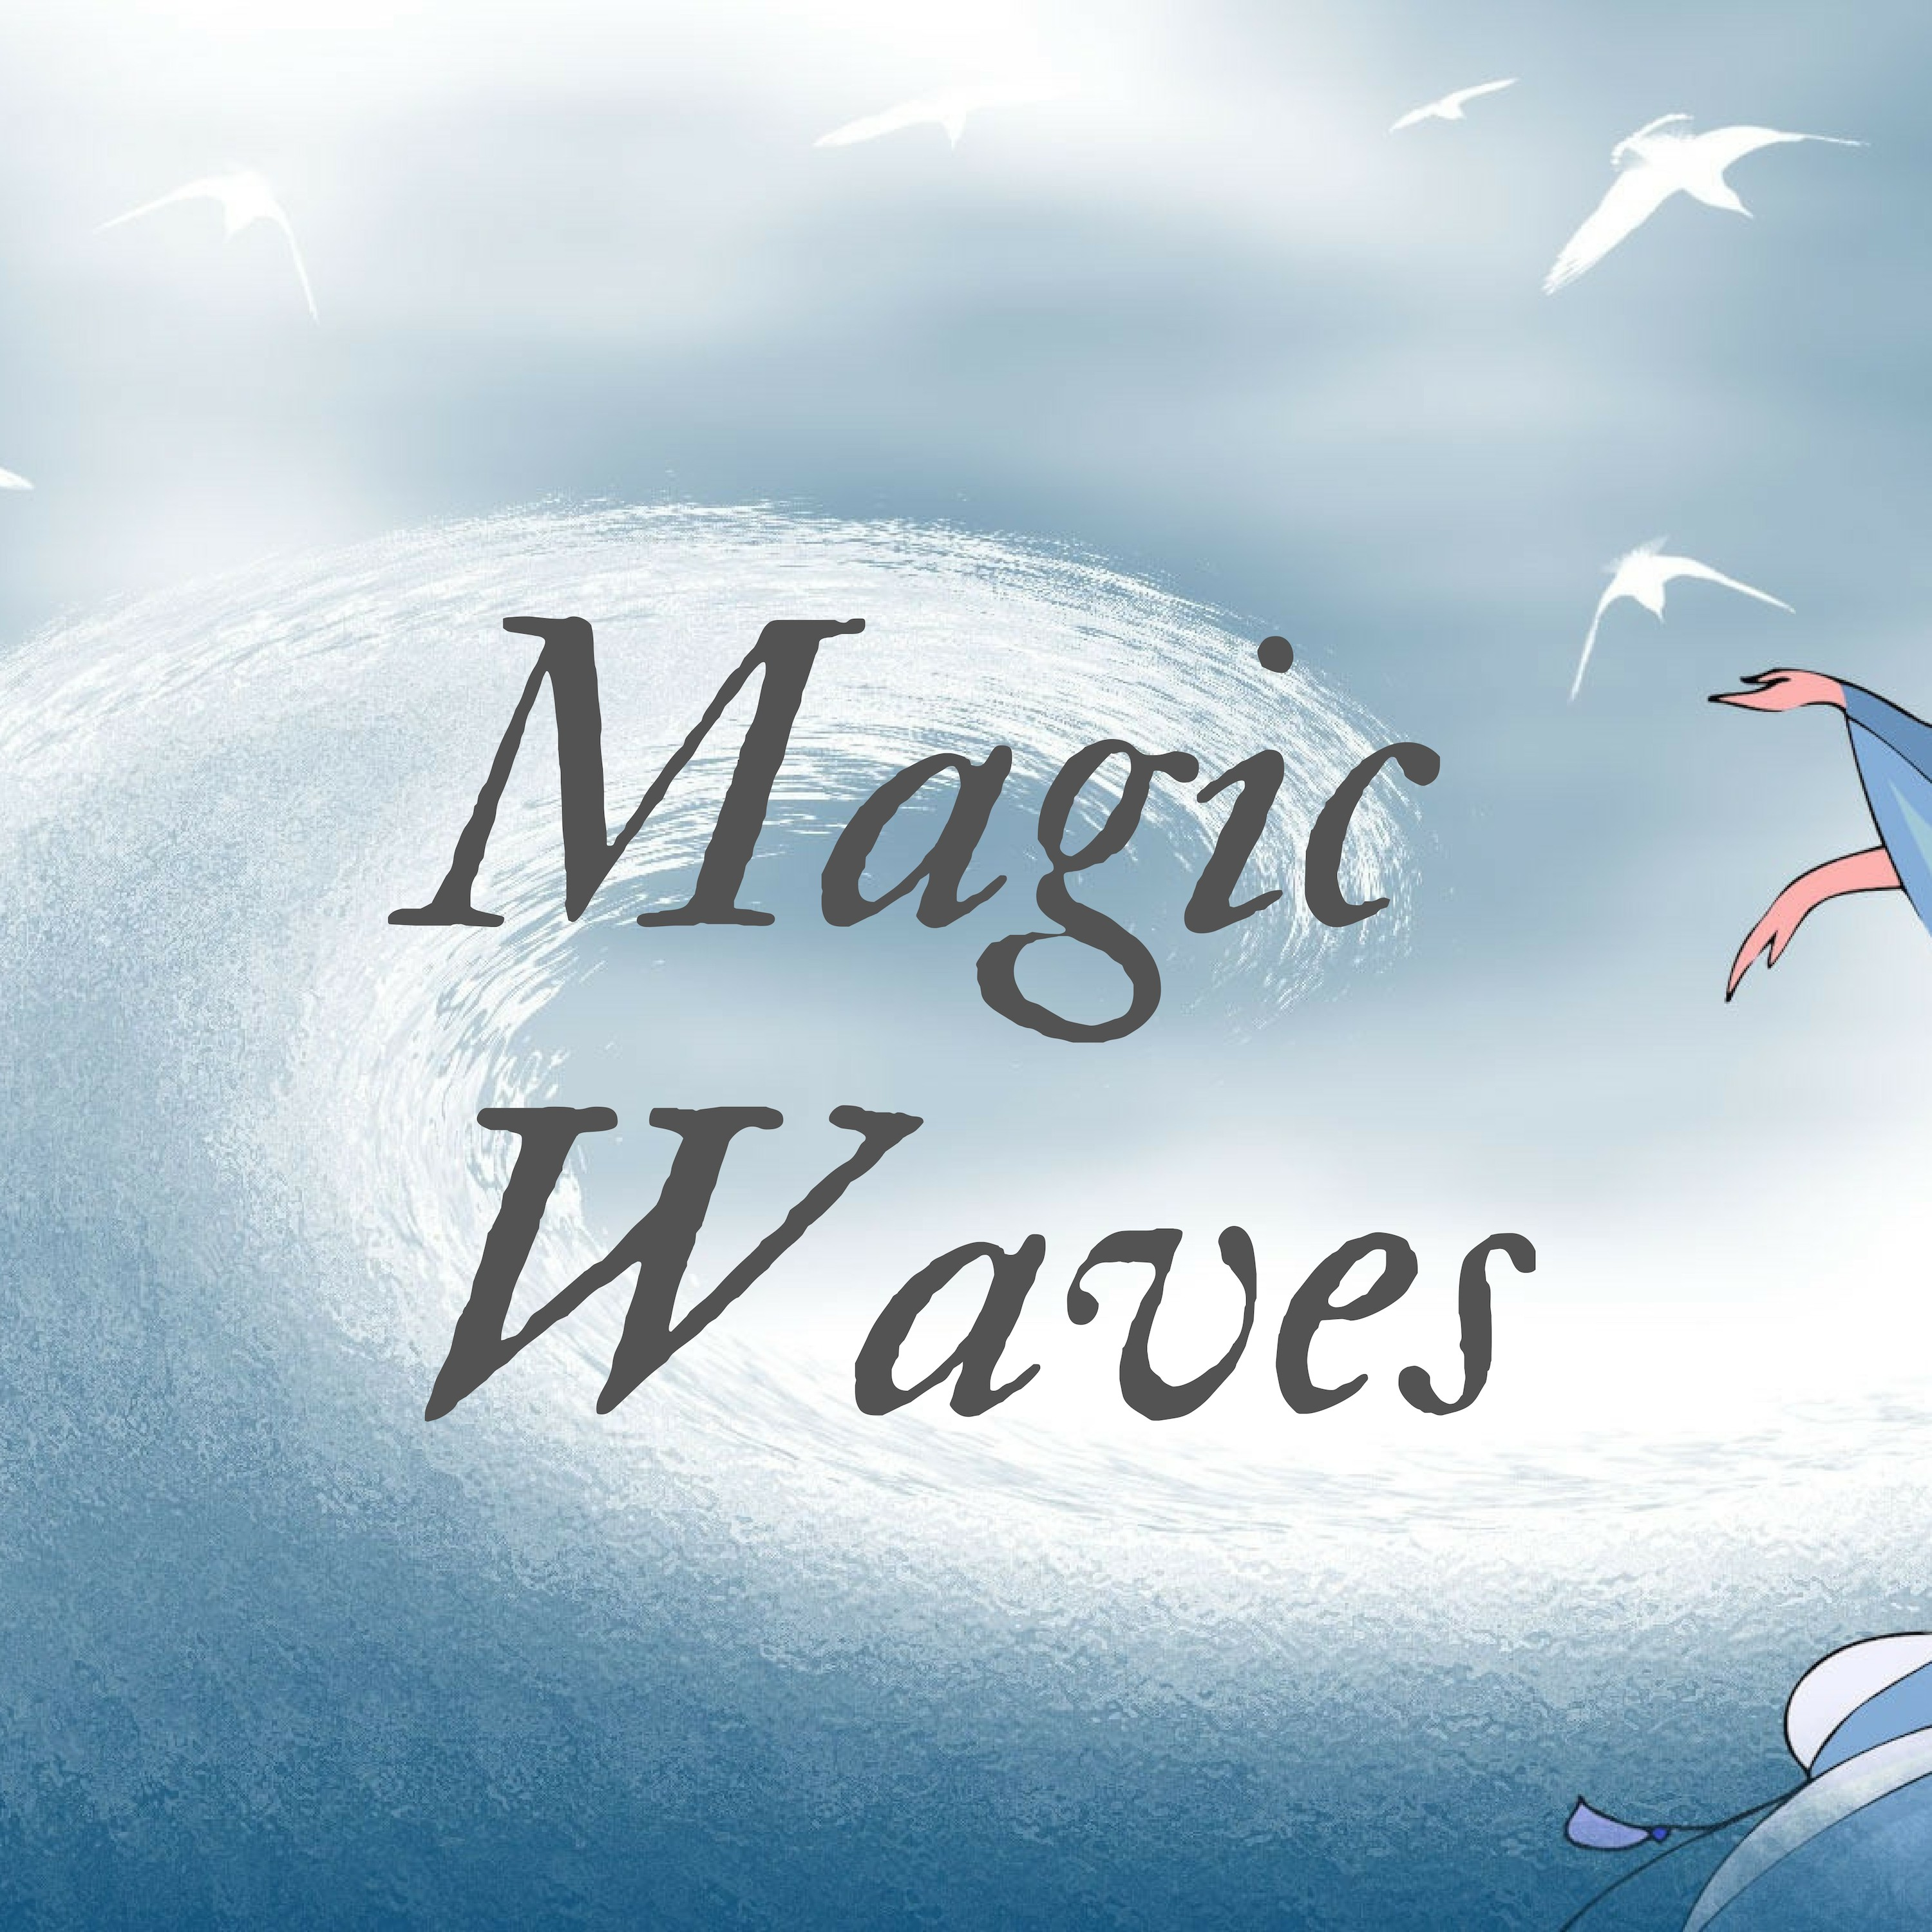 Songtext Magic waves